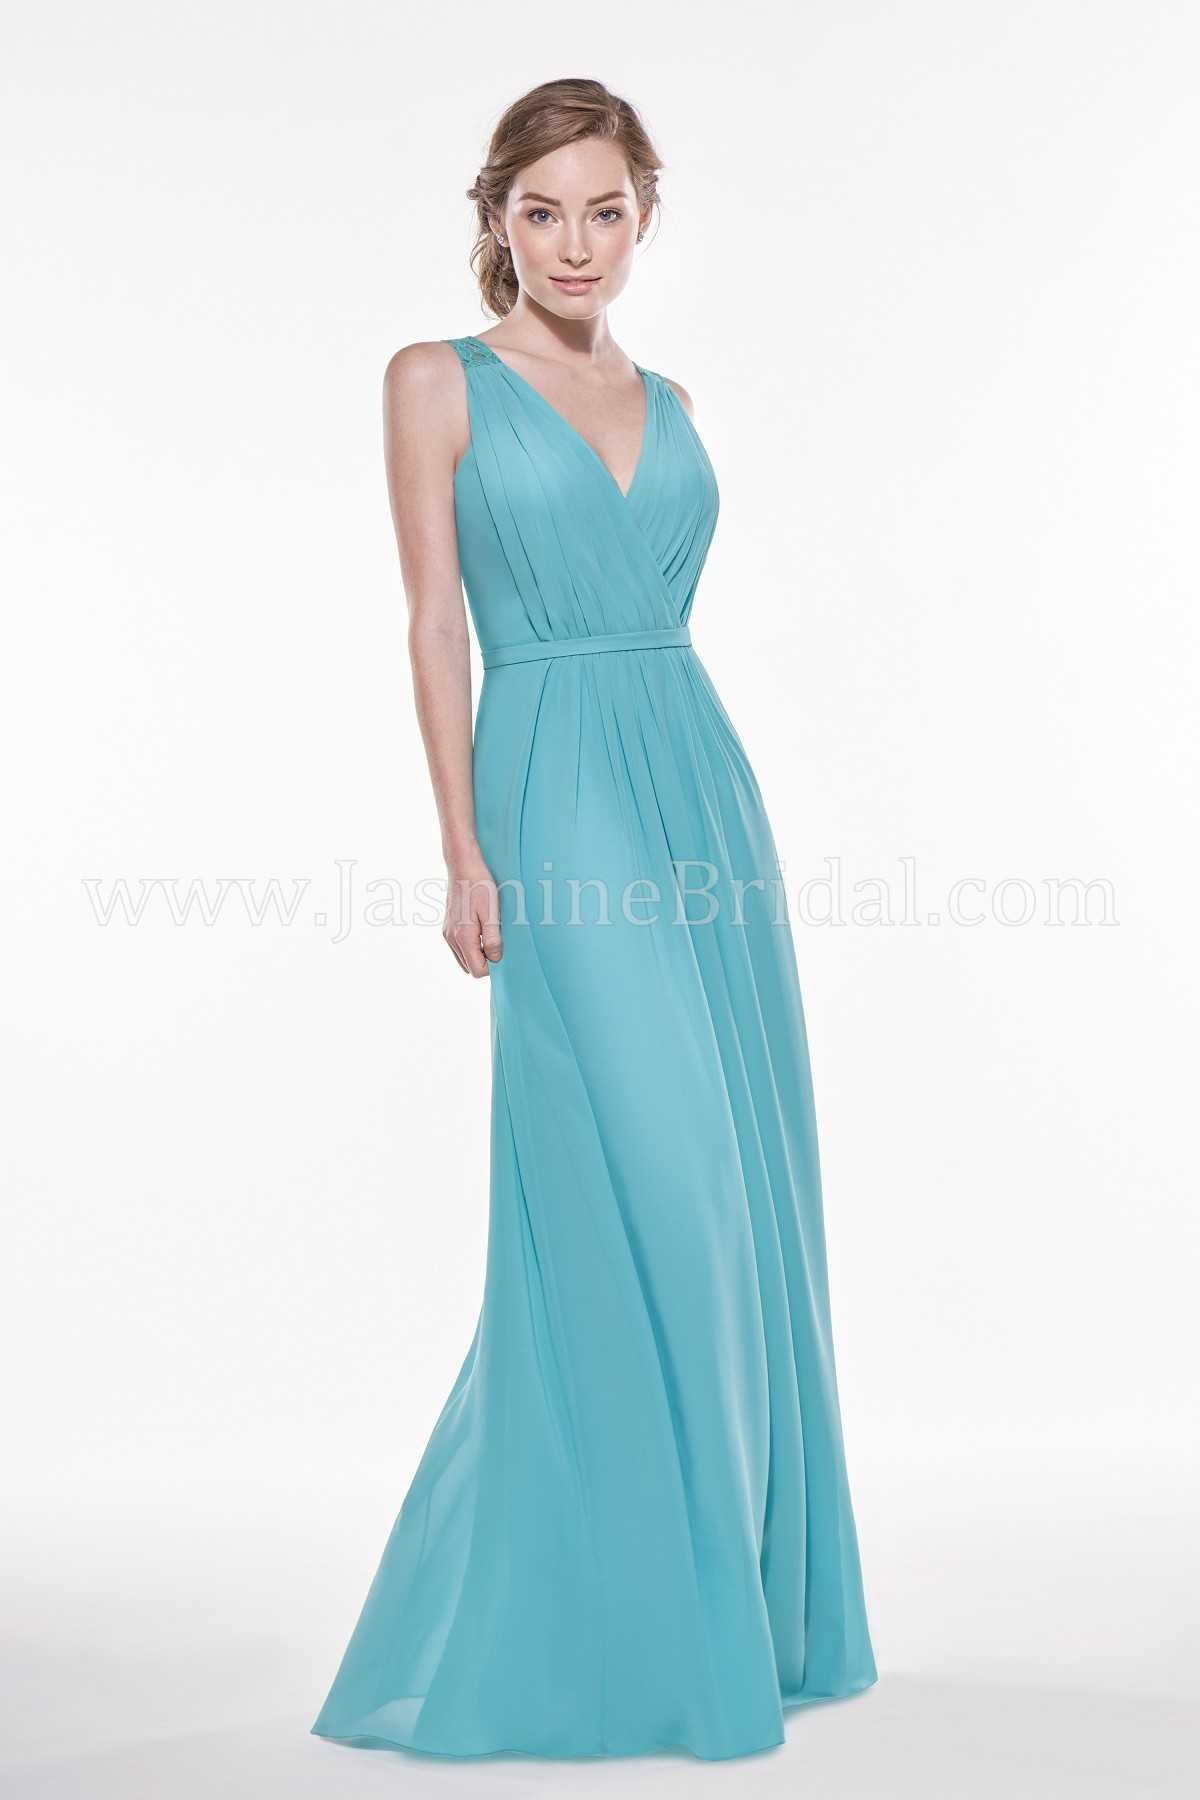 Bridesmaid Dress Designers Archives - Page 2 of 2 - Chryssie\'s Bridal